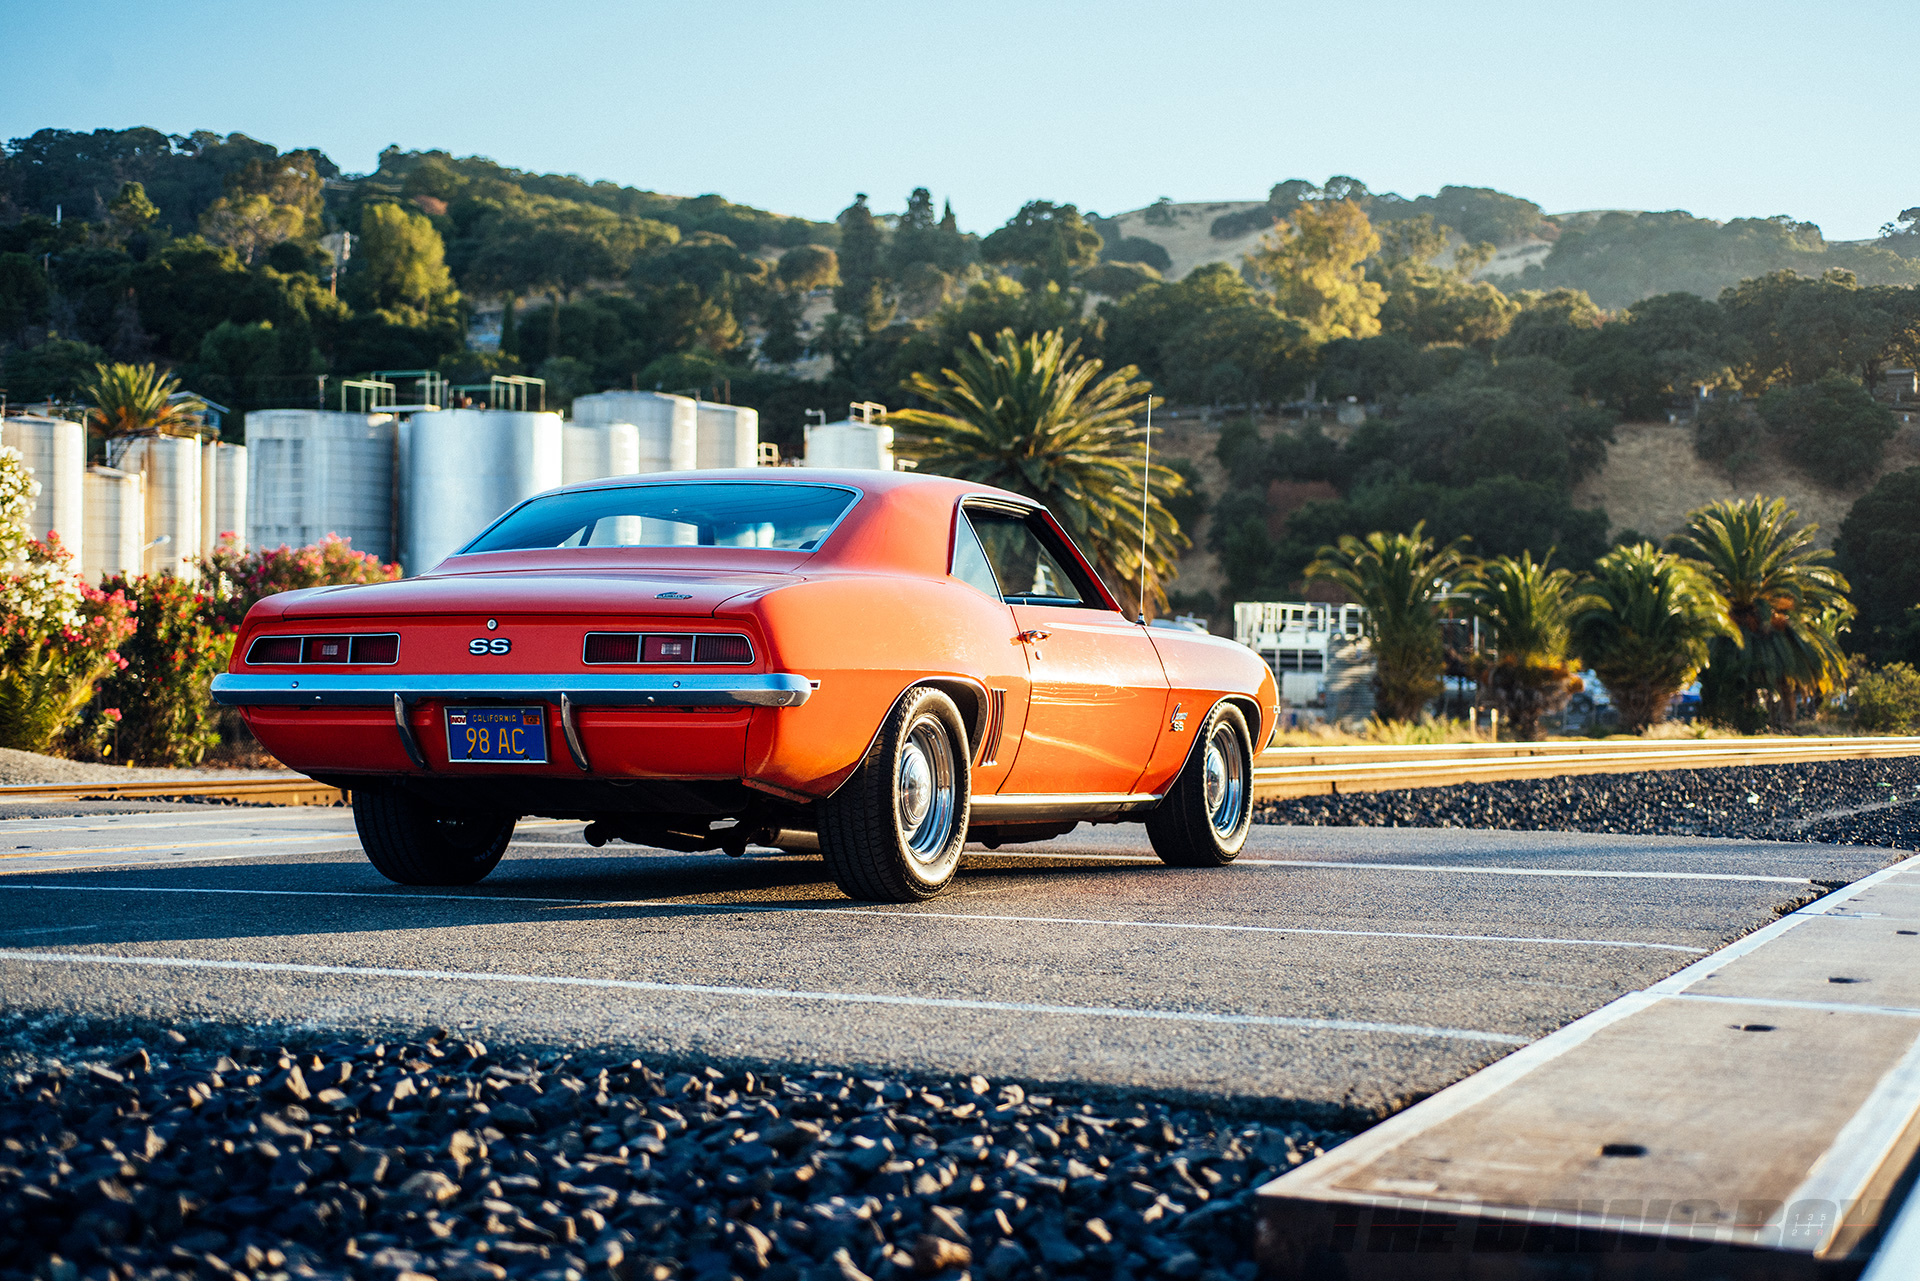 Rear 3/4 view of Curt Hill's 1969 Chevy Camaro SS